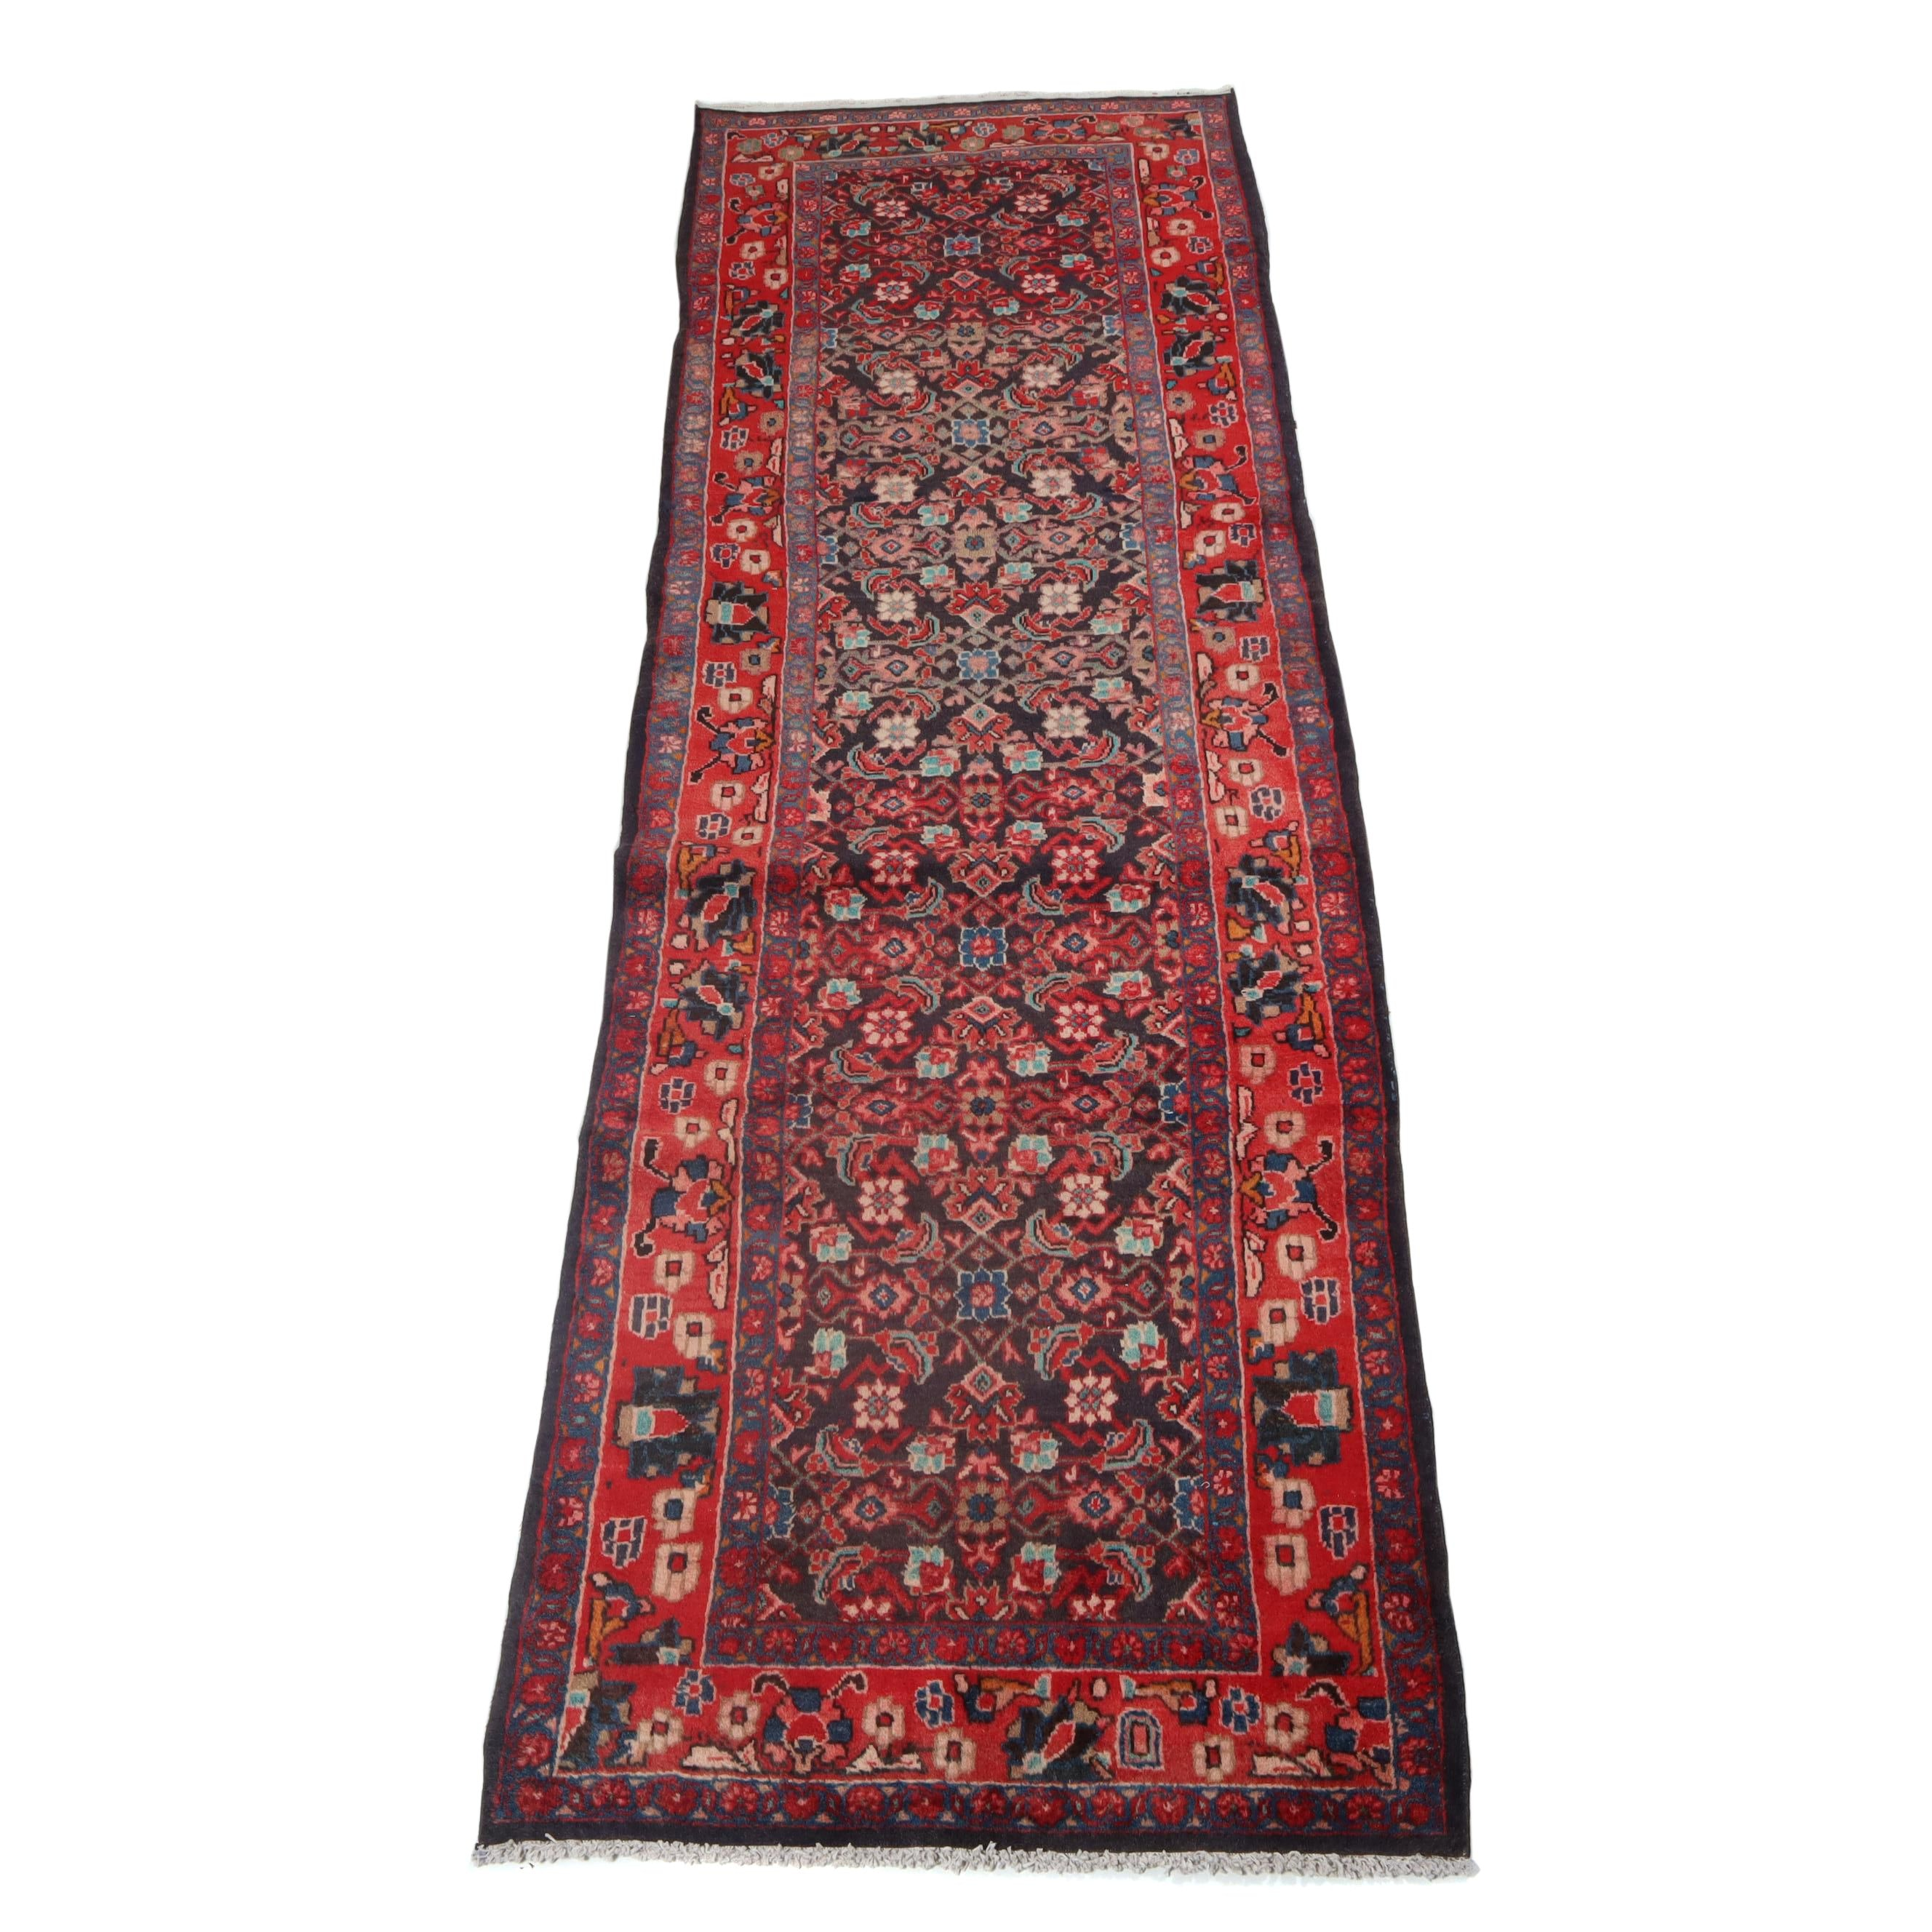 3.7' x 11' Hand-Knotted Northwest Persian Wool Carpet Runner, Circa 1940s